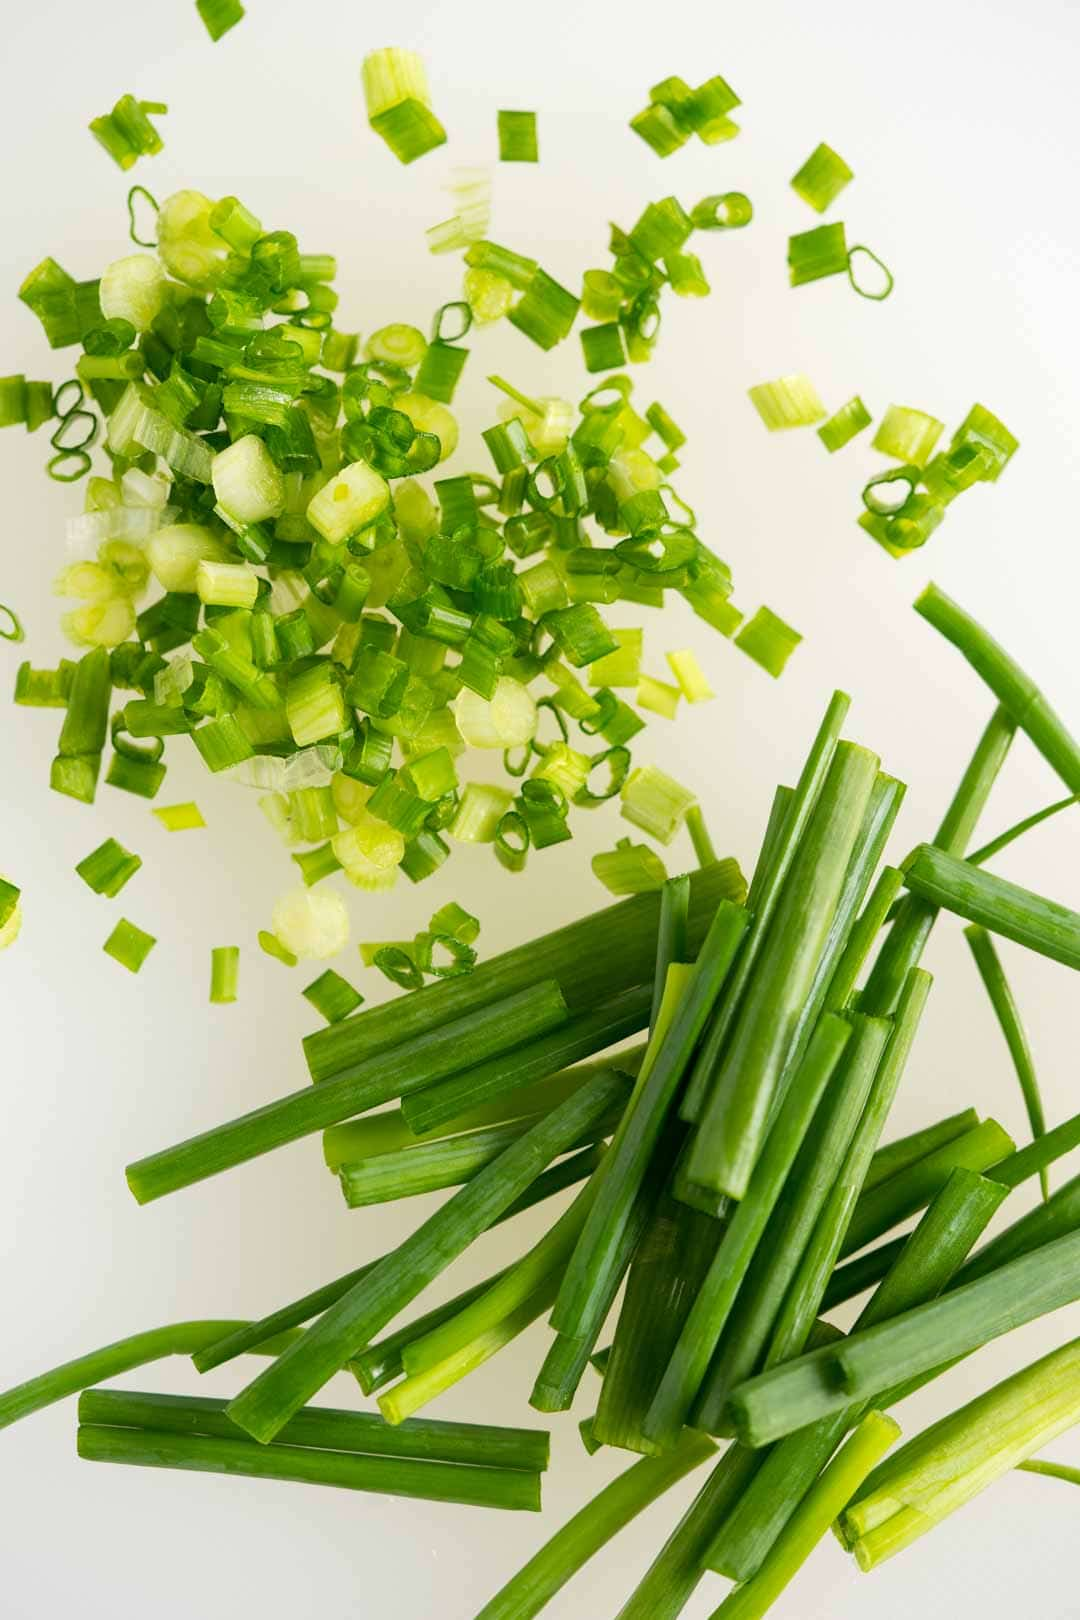 chopped green onion